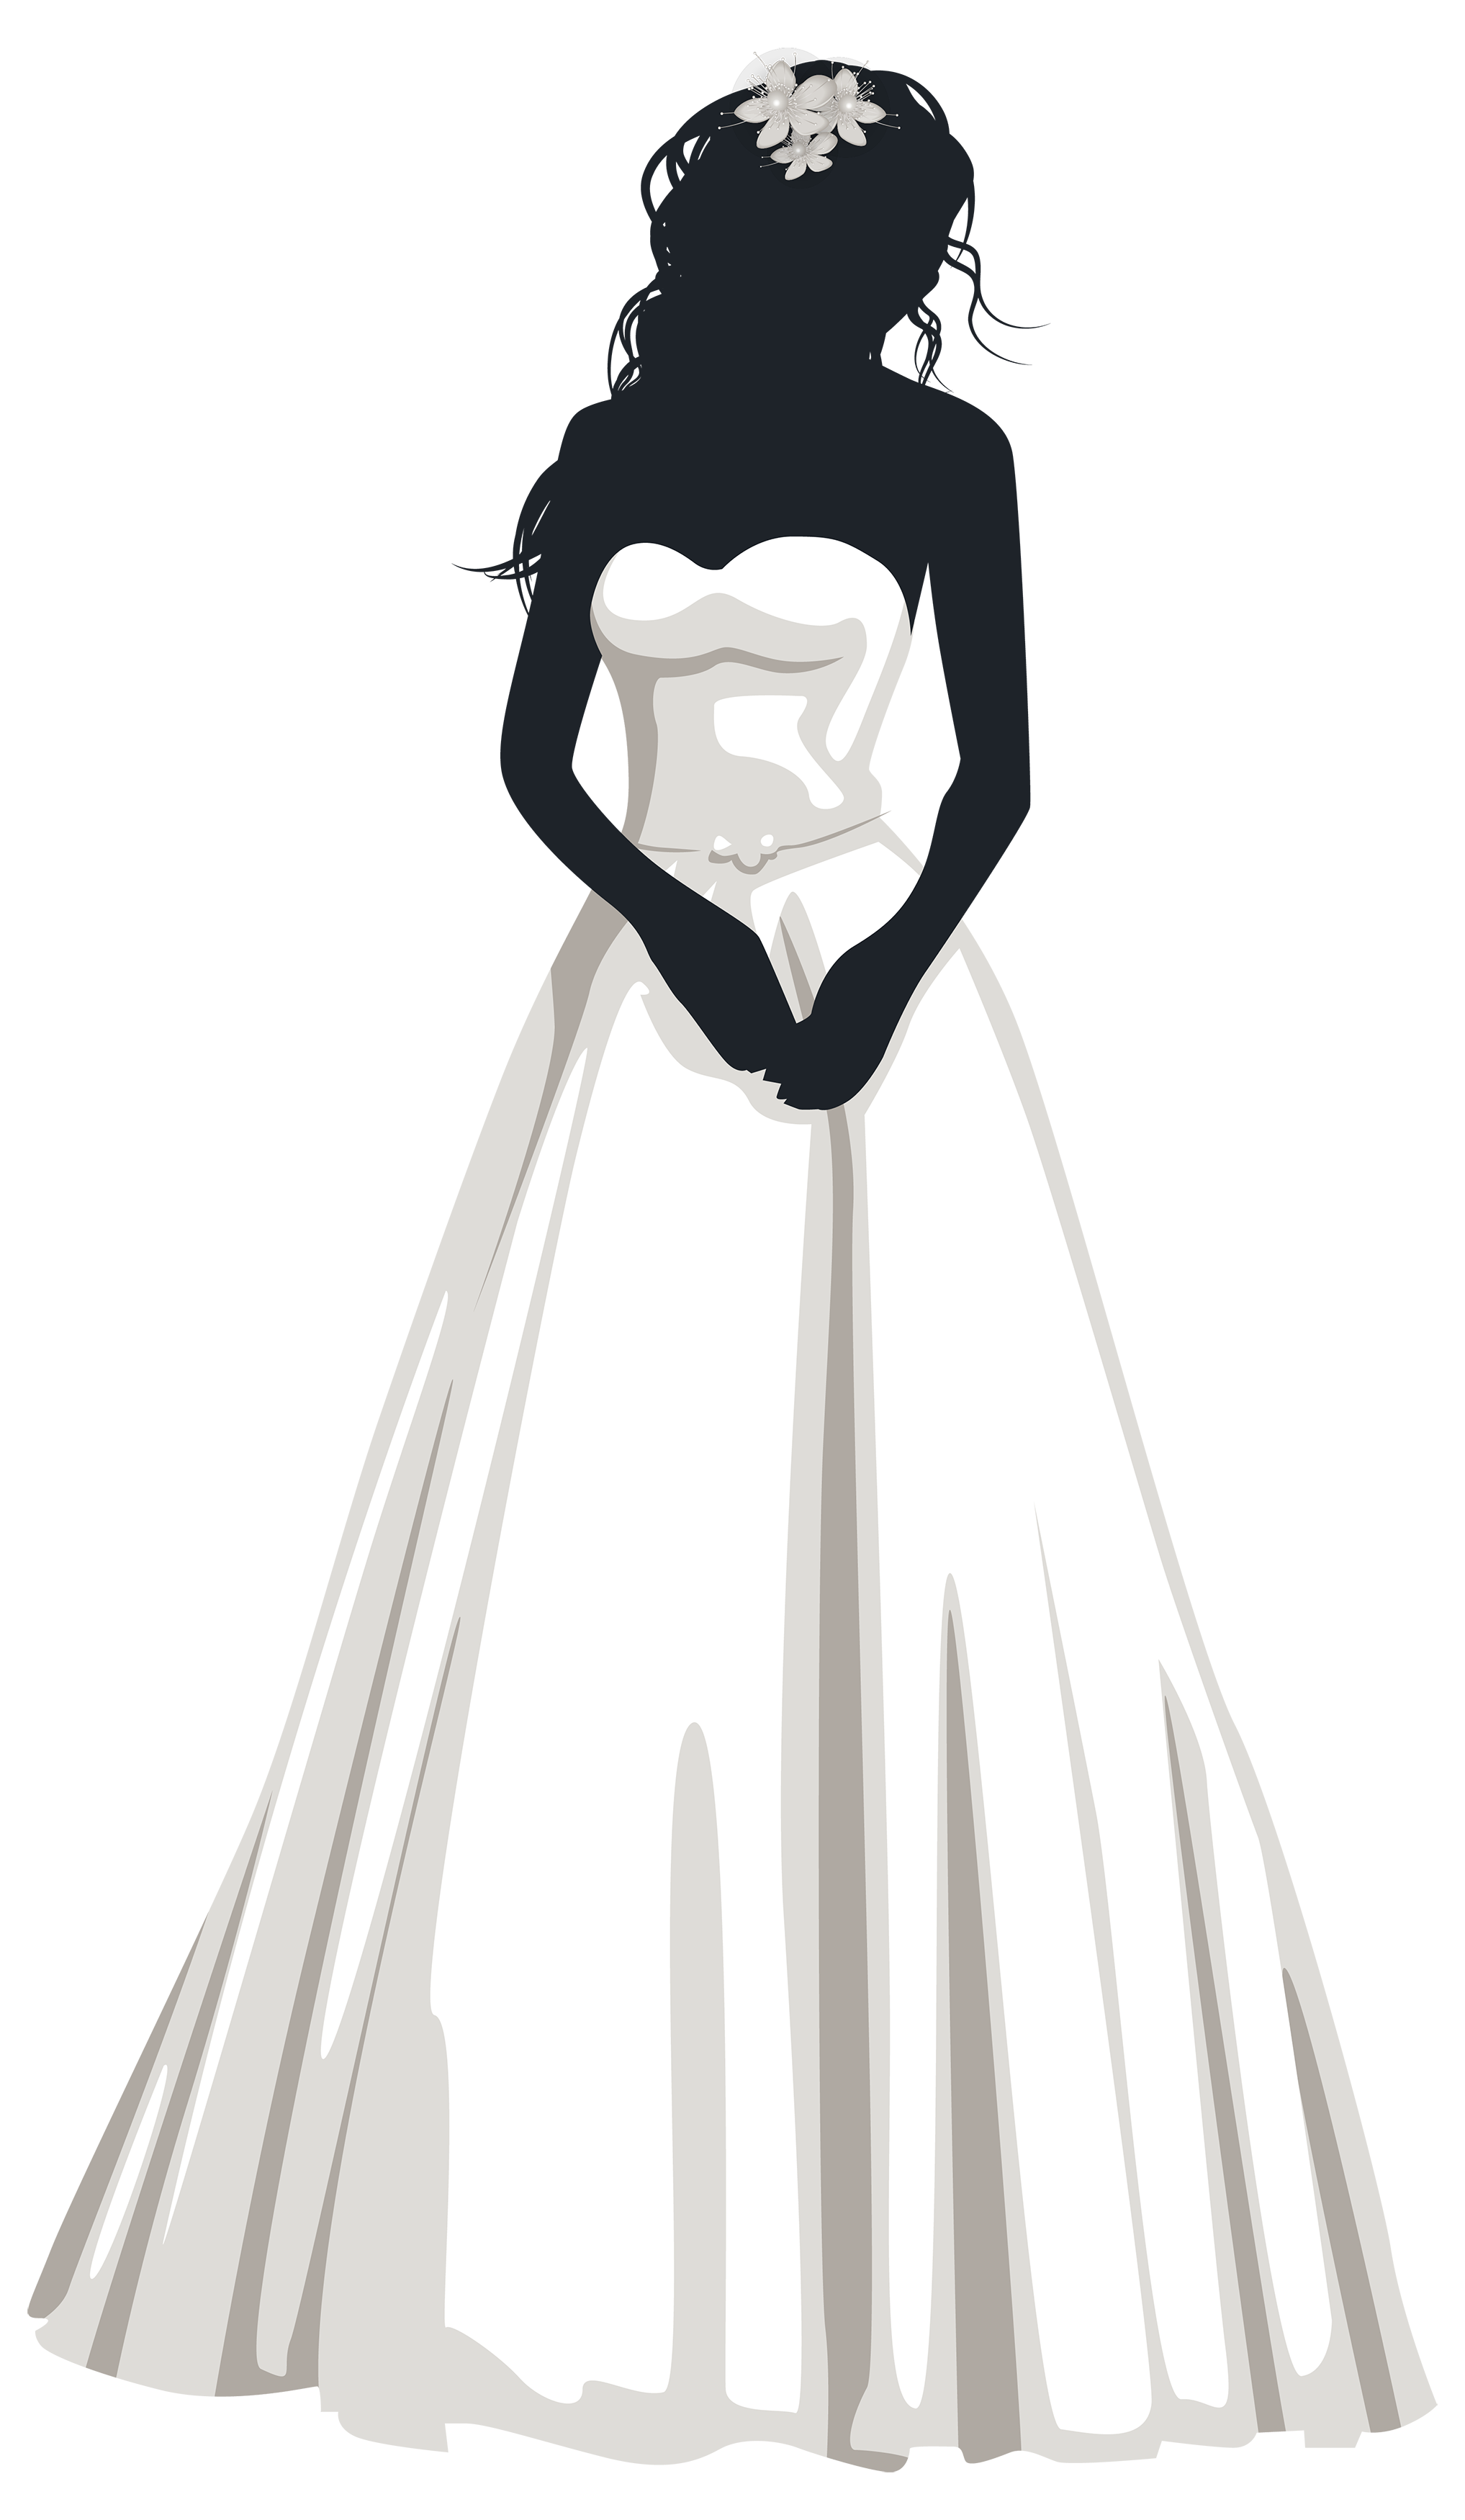 clipart royalty free library Silhouette png clip art. Bride clipart.